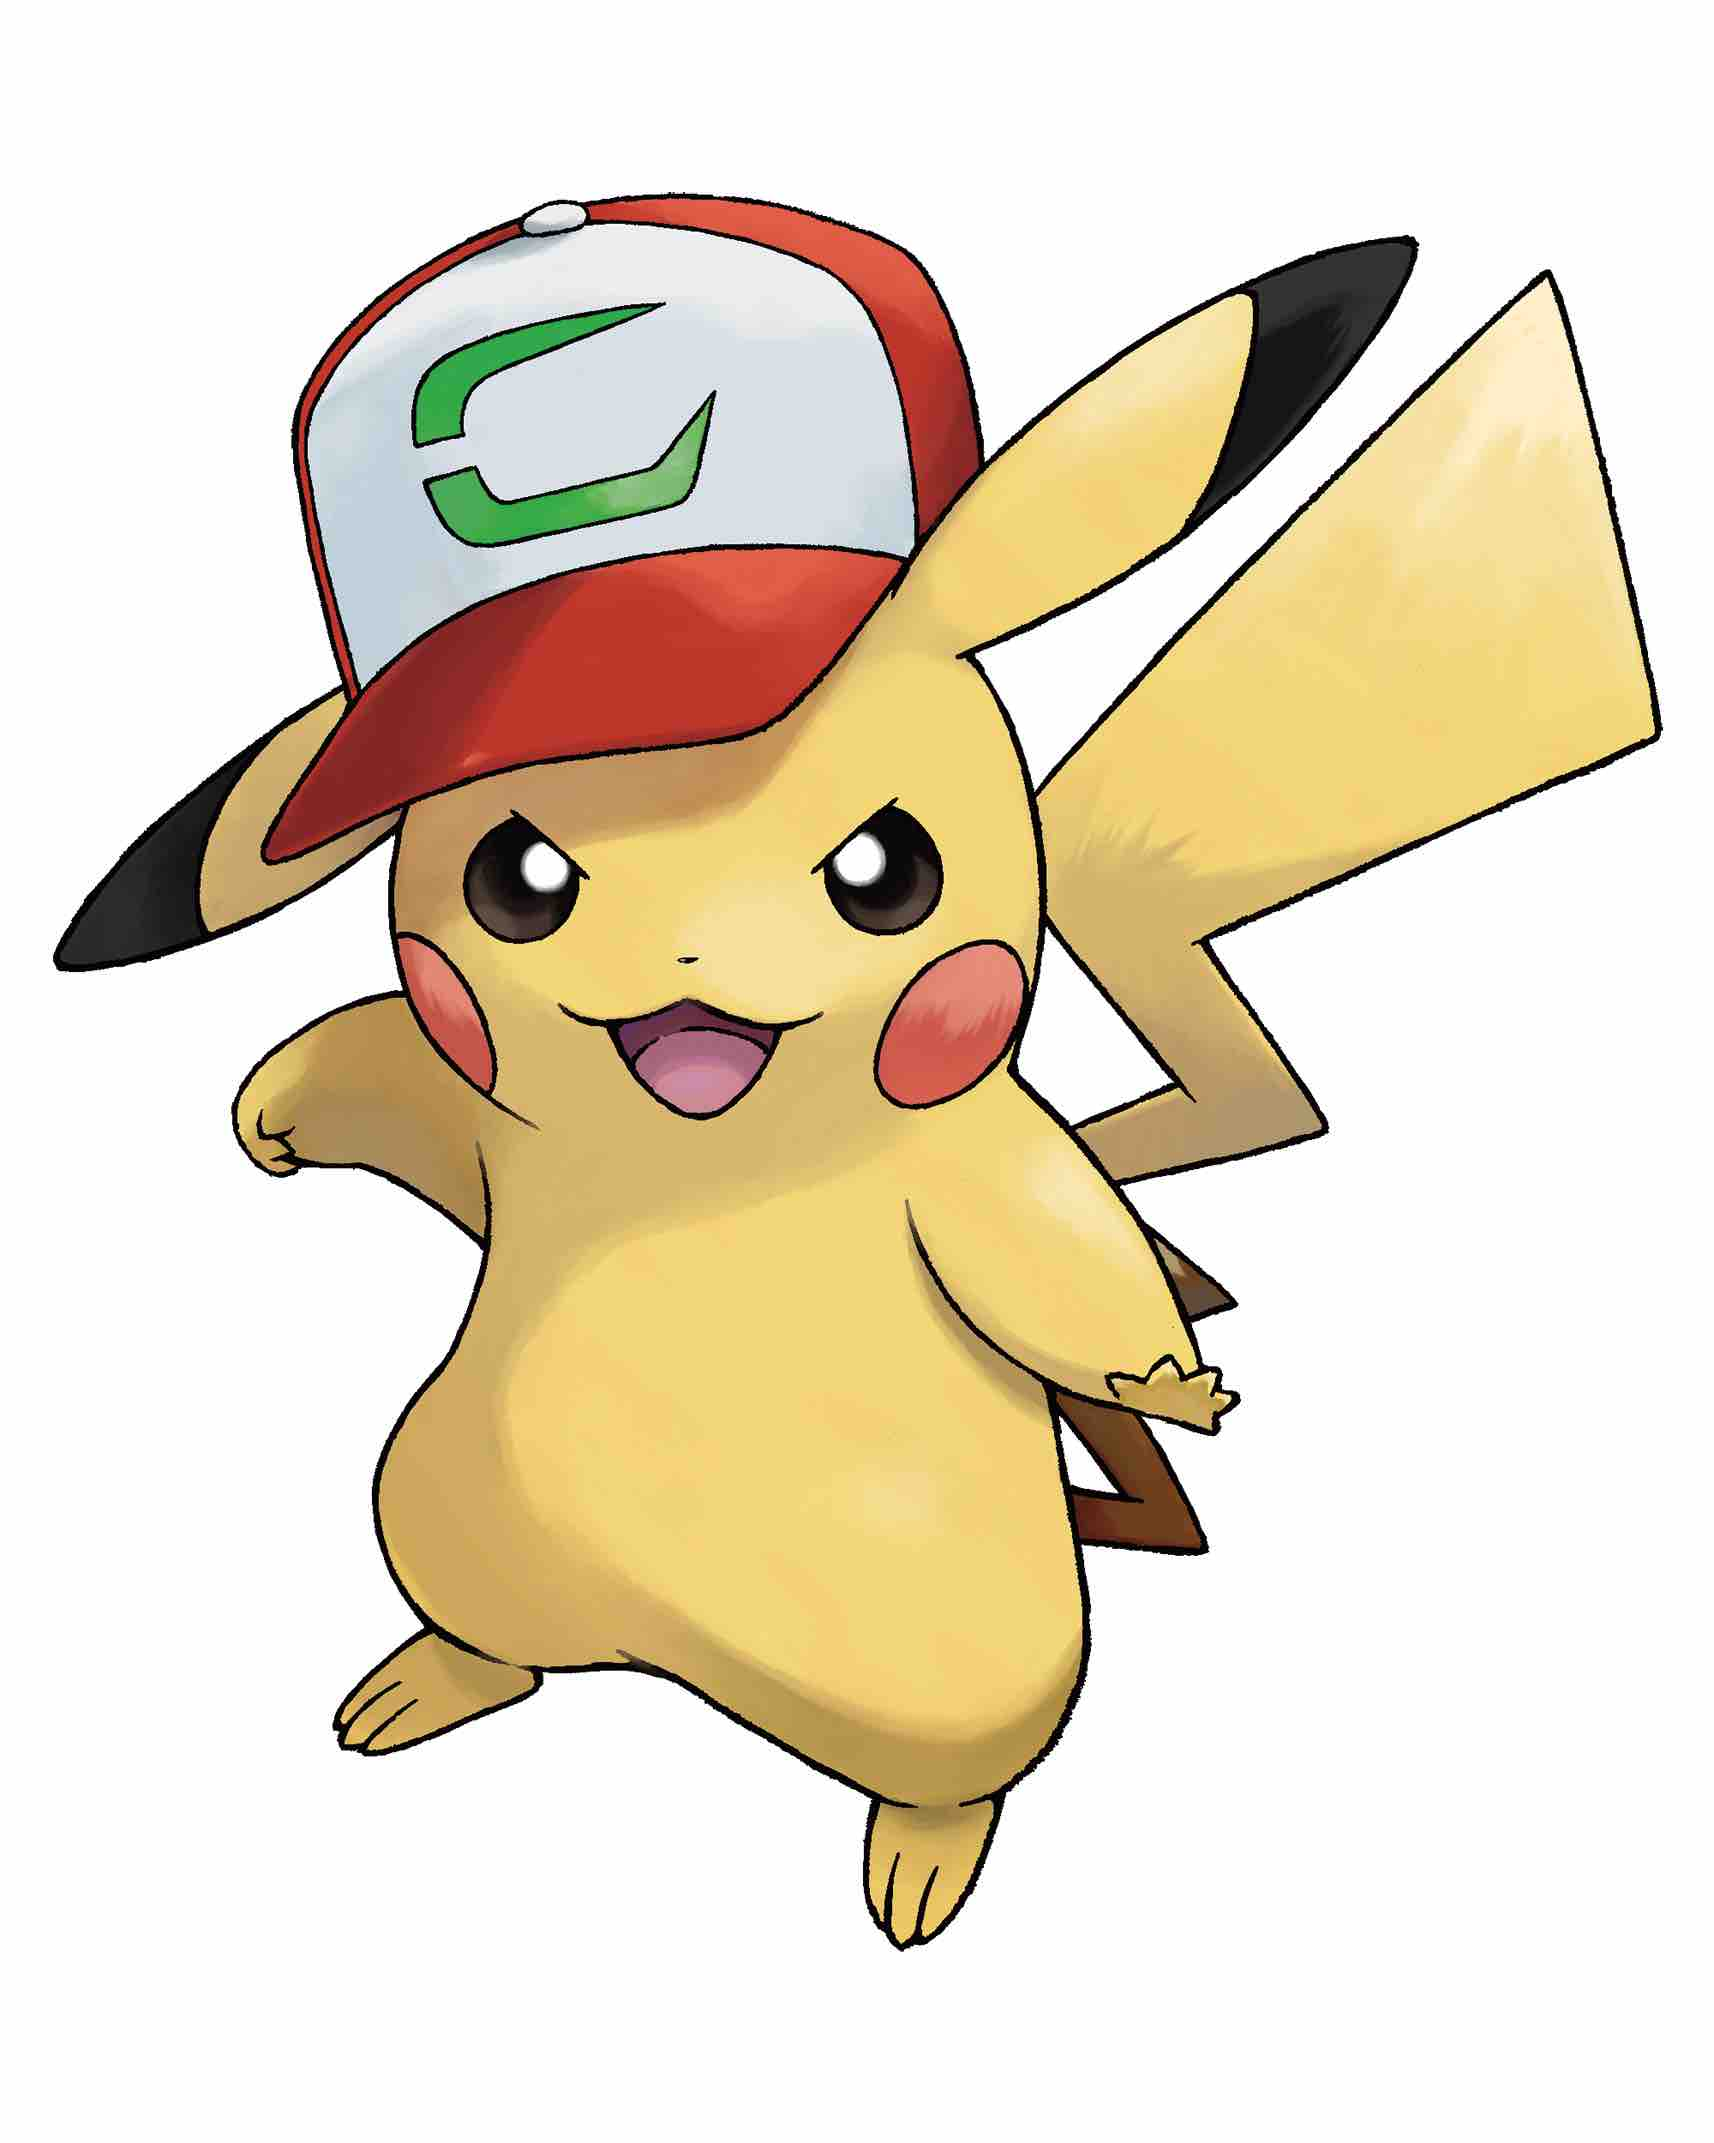 [Image: ash-pikachu-i-choose-you-image.jpeg]